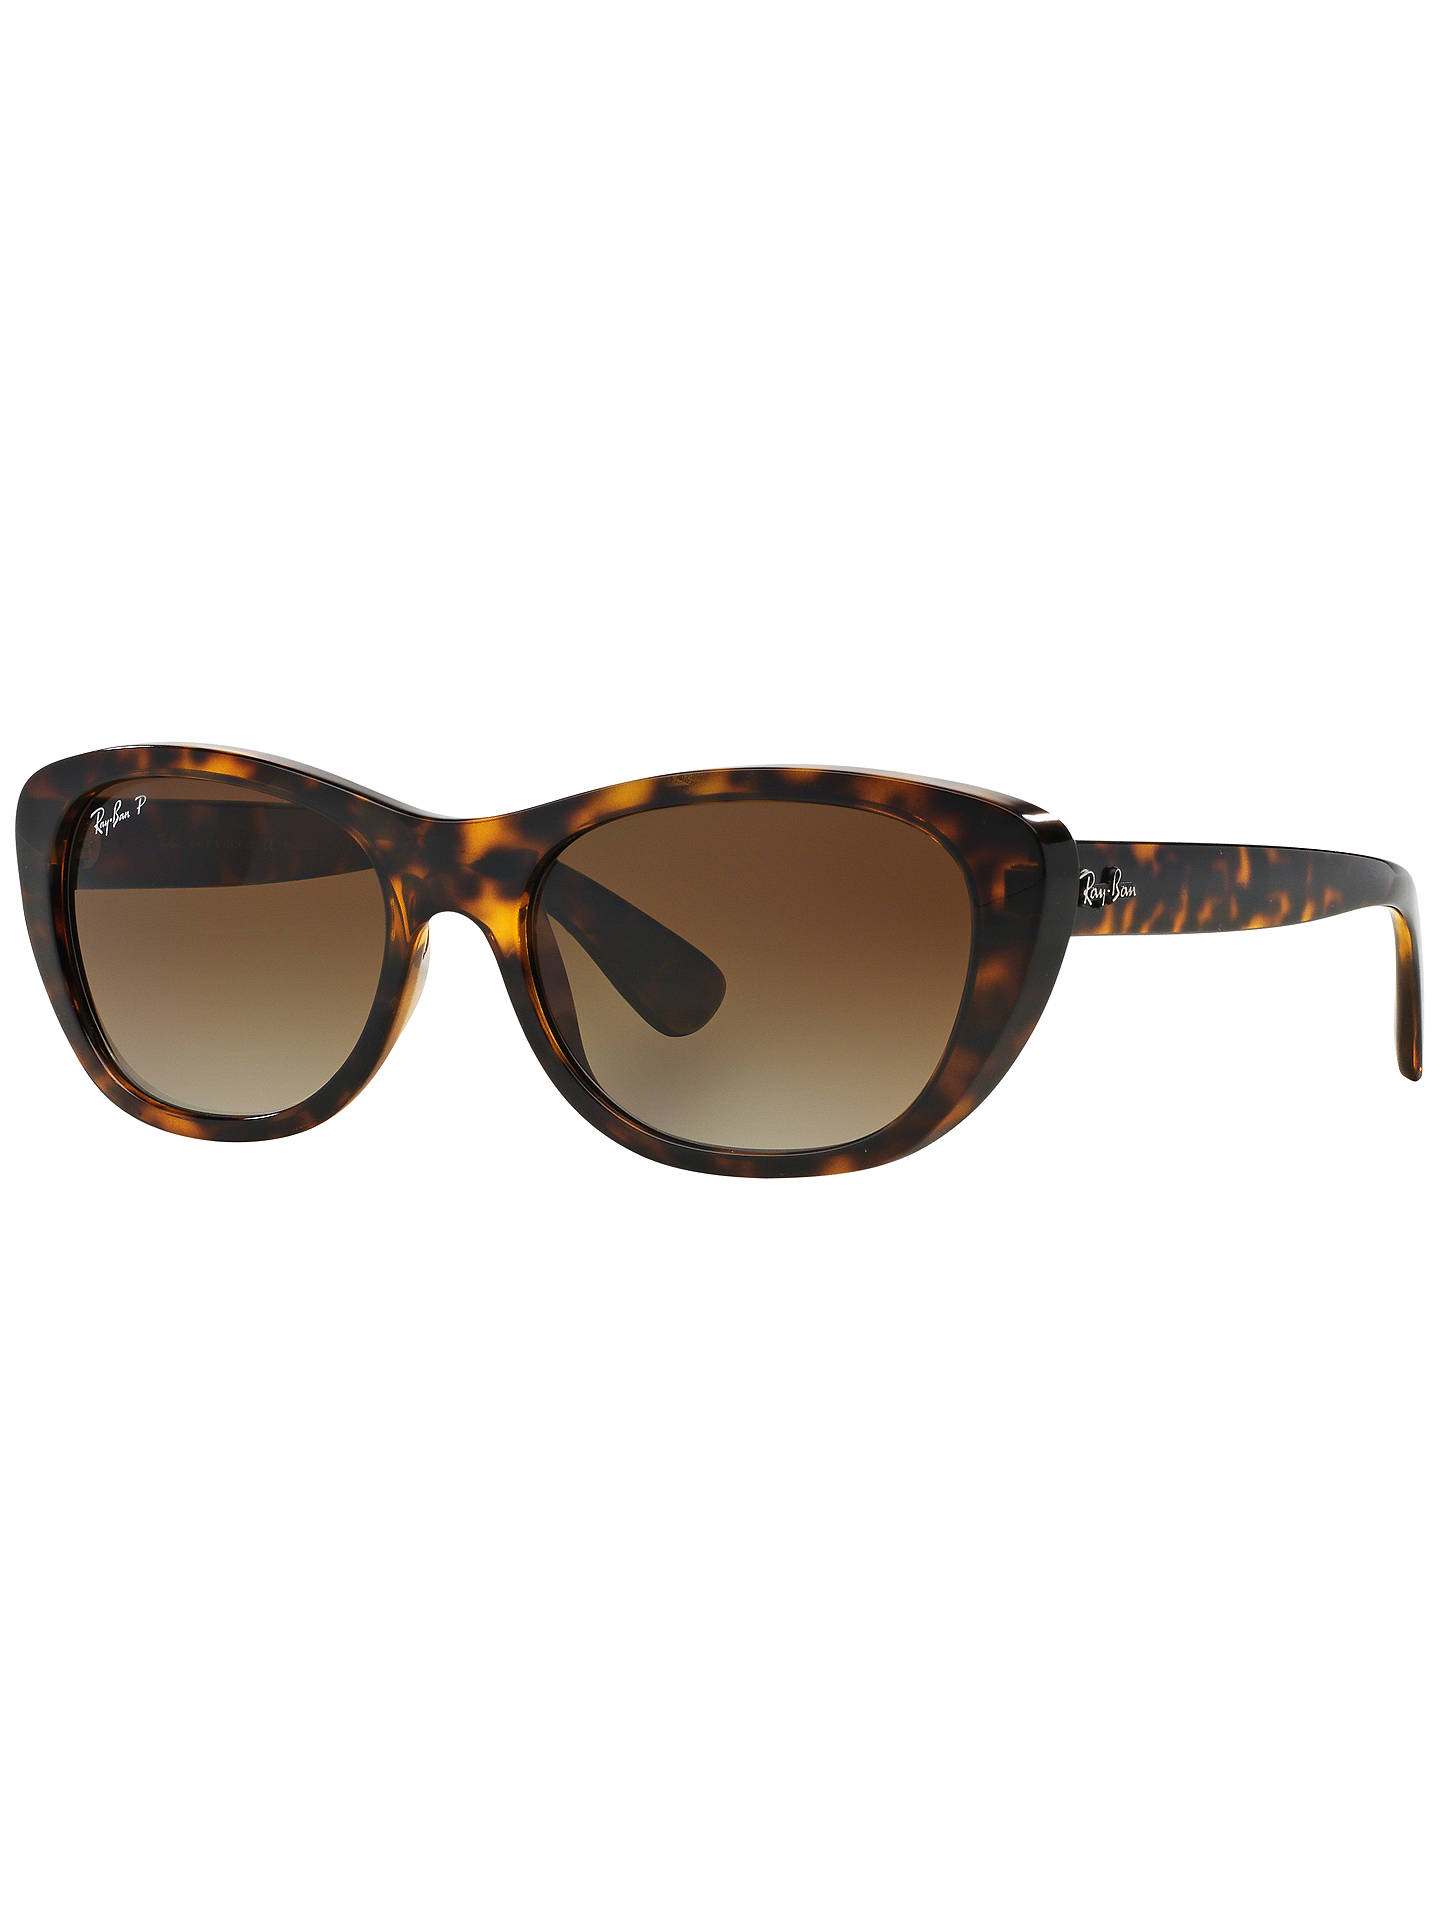 Buy Ray-Ban RB4227 Square Framed Sunglasses, Tortoise Online at johnlewis.com